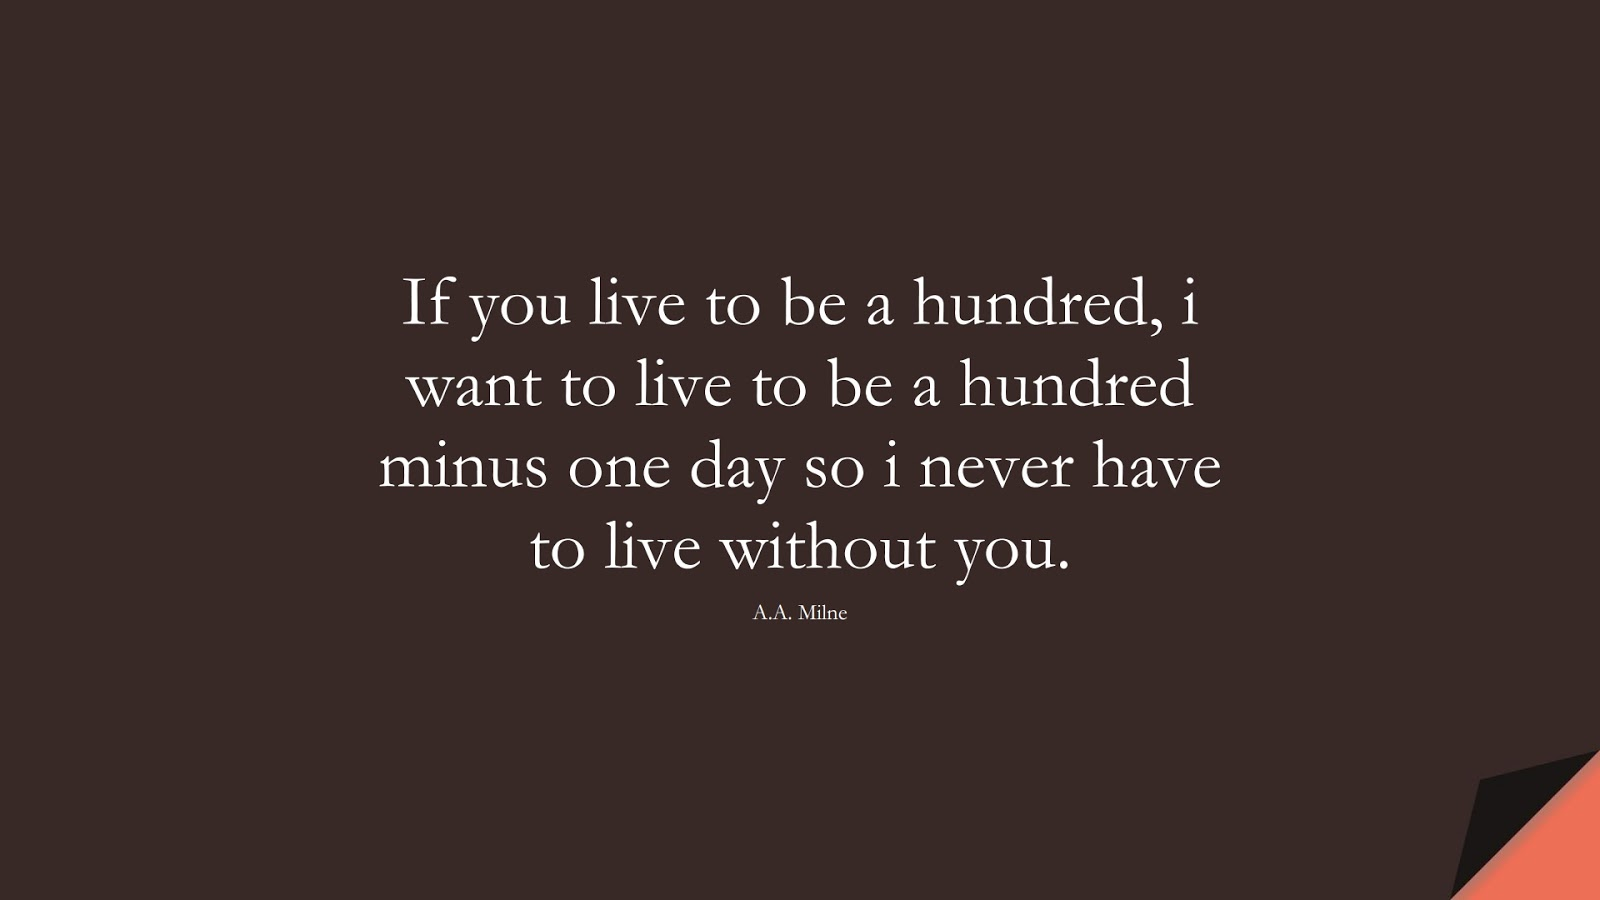 If you live to be a hundred, i want to live to be a hundred minus one day so i never have to live without you. (A.A. Milne);  #LoveQuotes